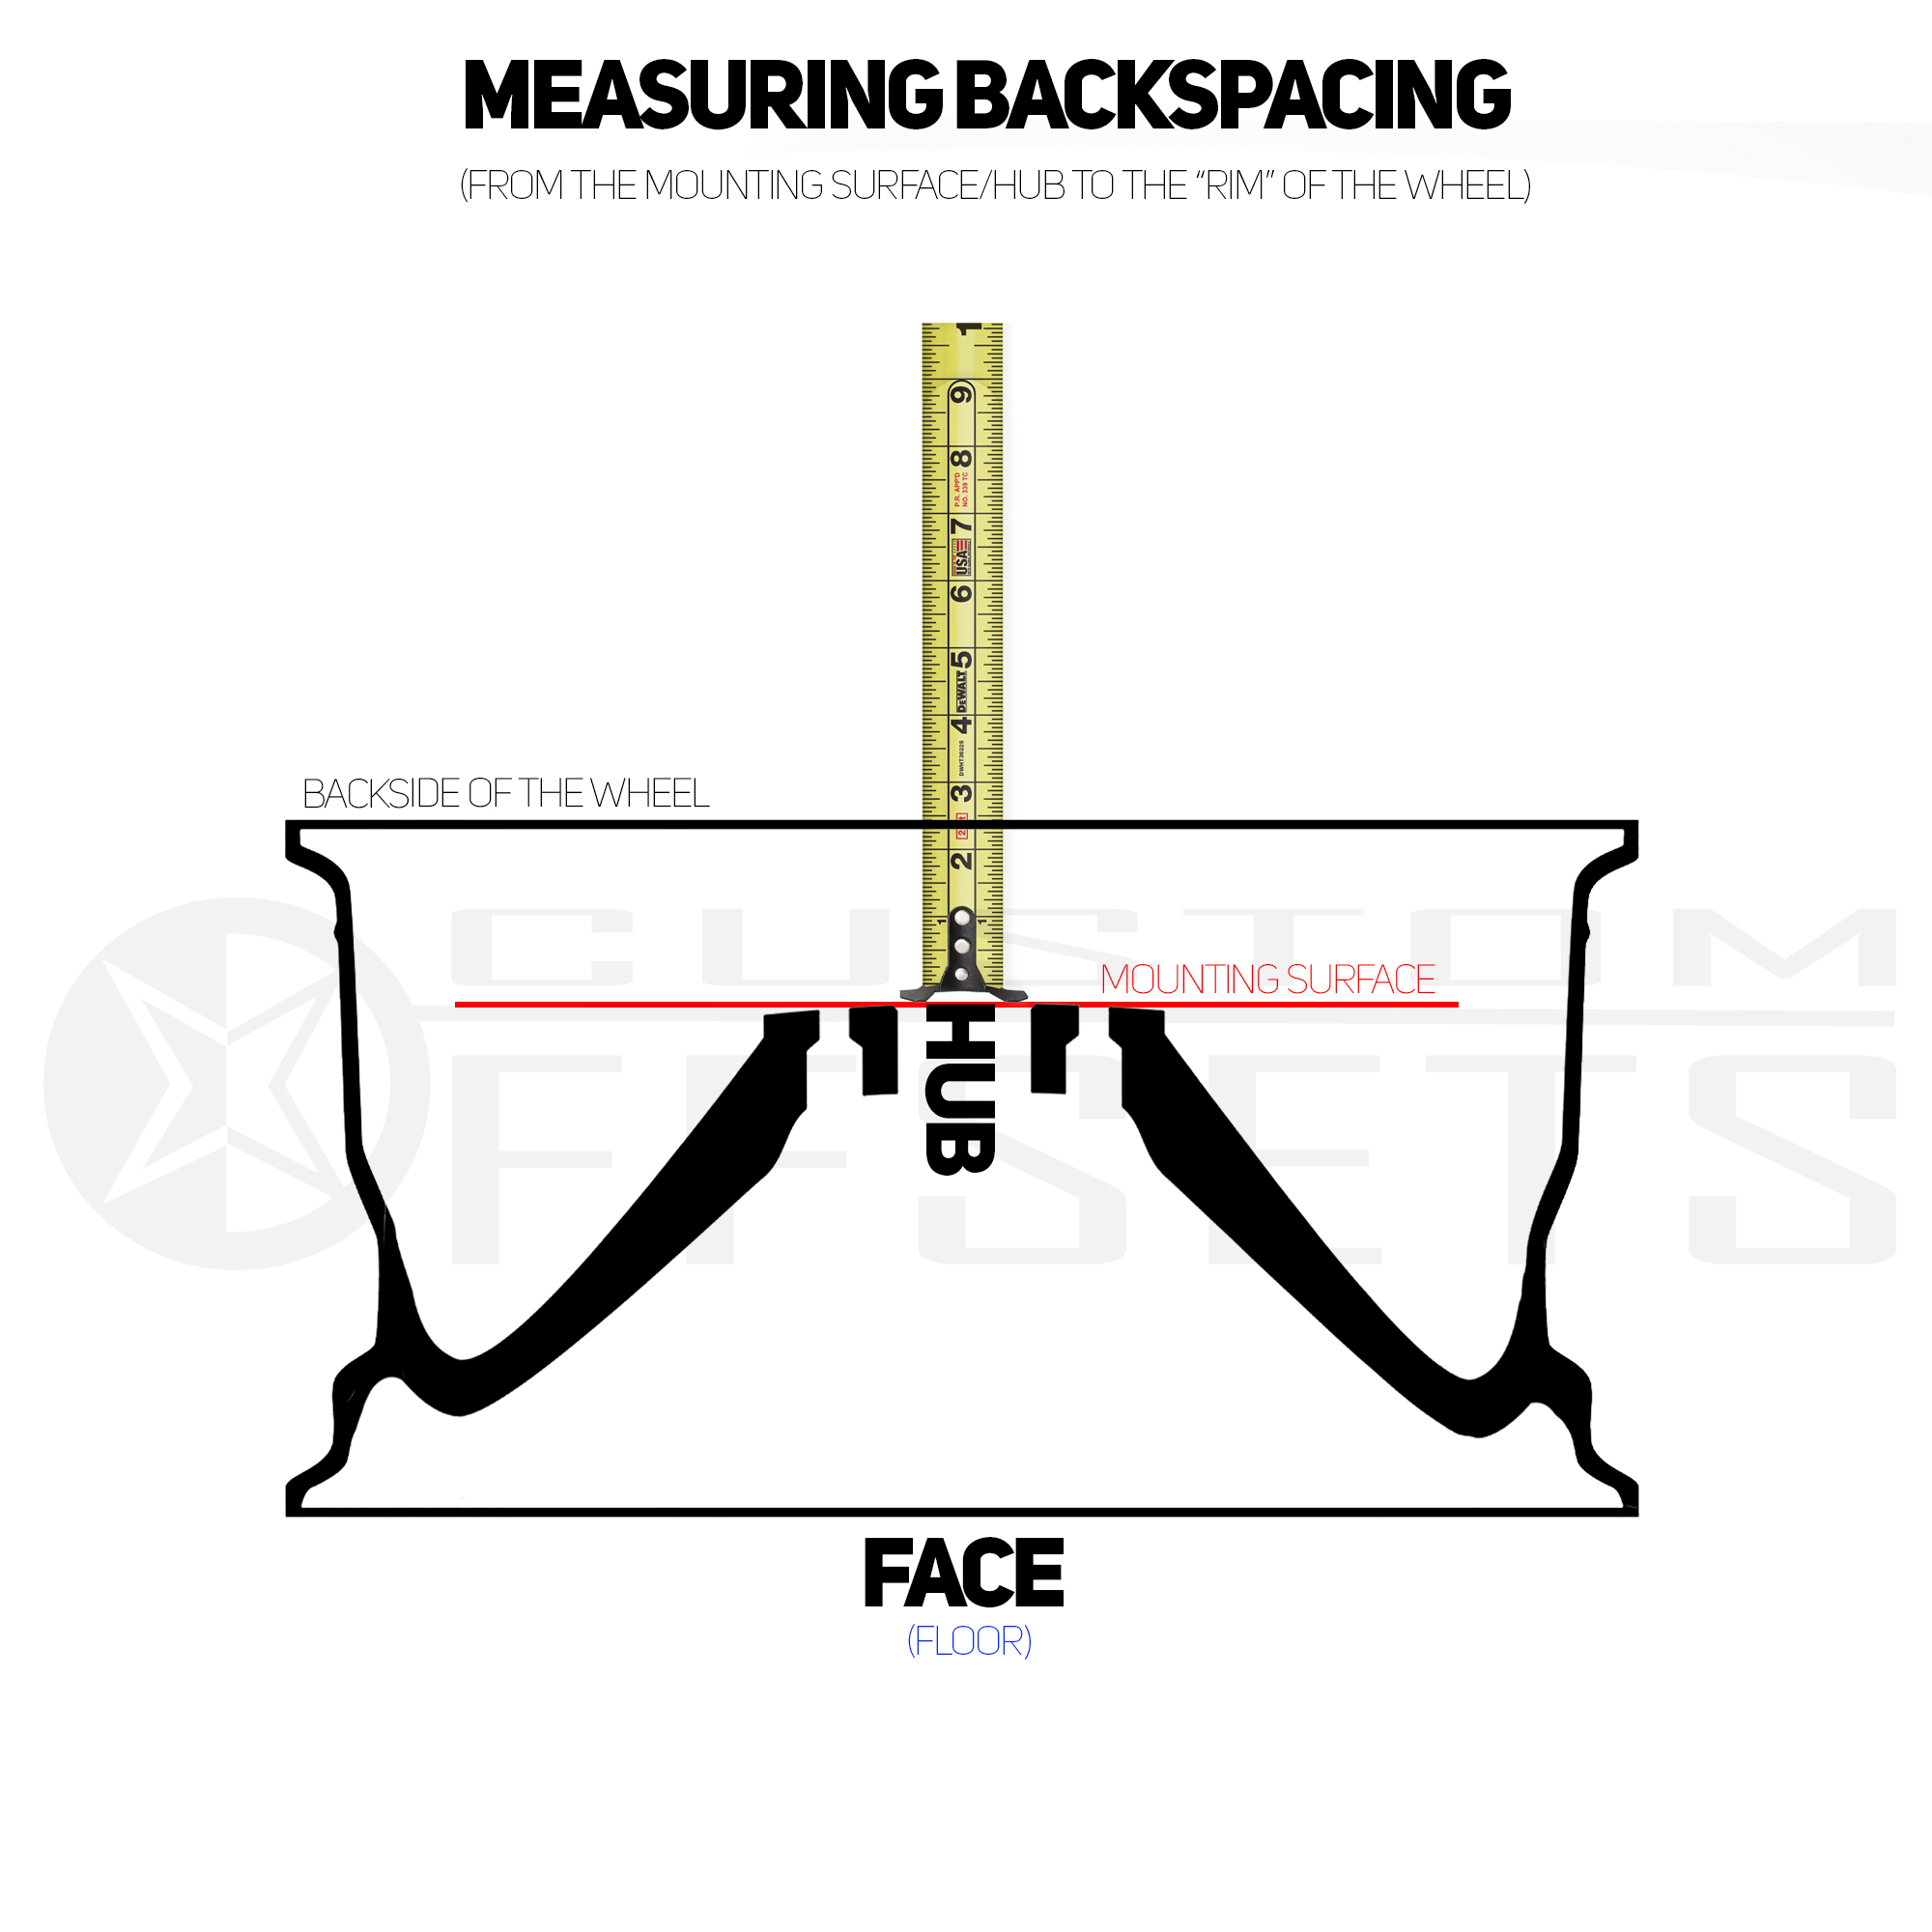 Measuring Backspacing